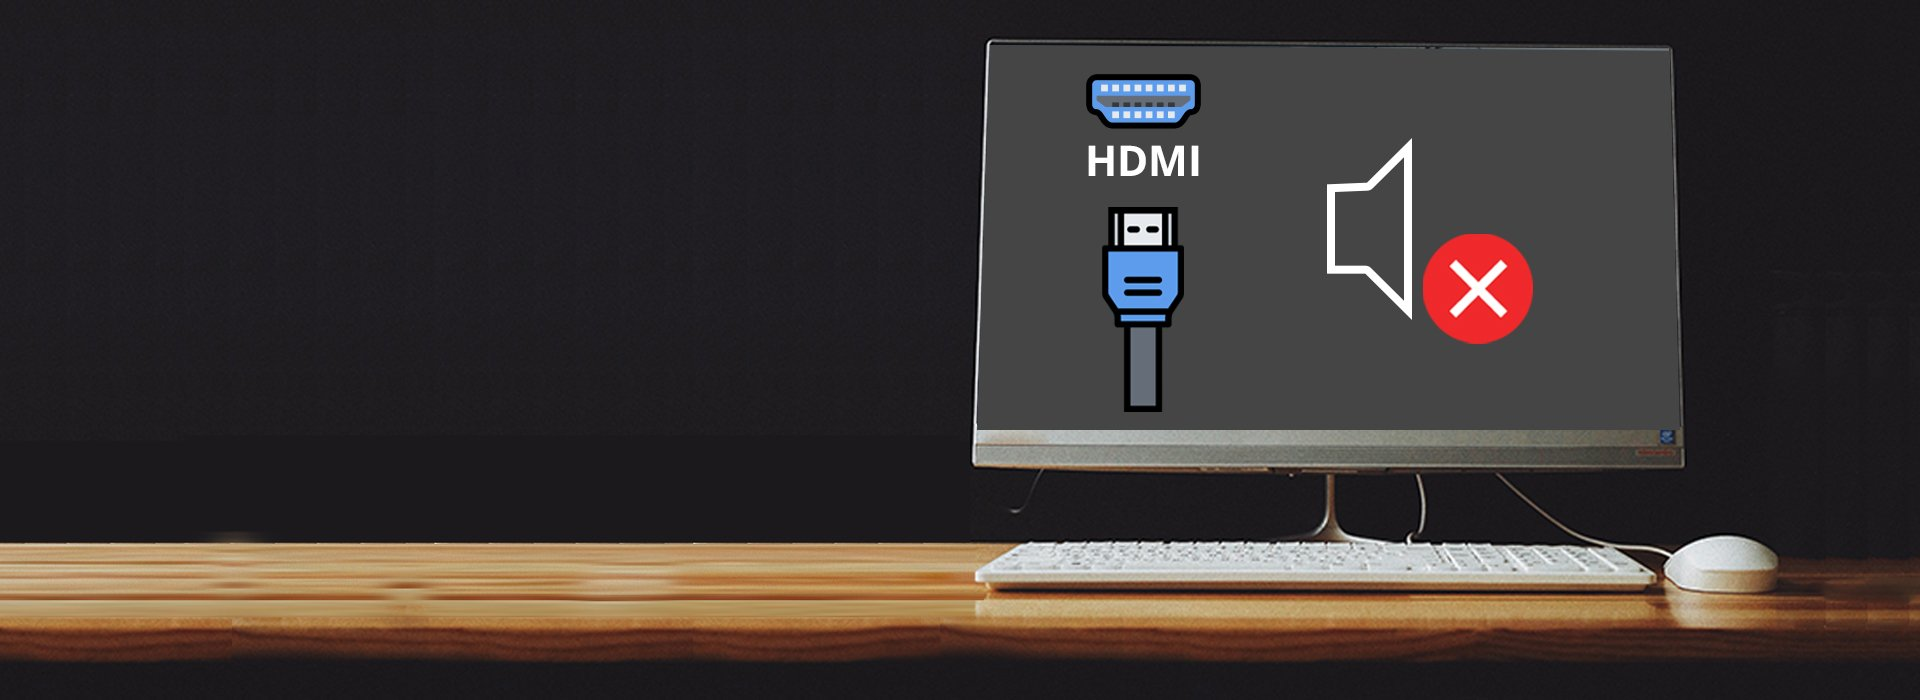 how to fix hdmi no sound after connecting computer to monitor and tv driver easy how to fix hdmi no sound after